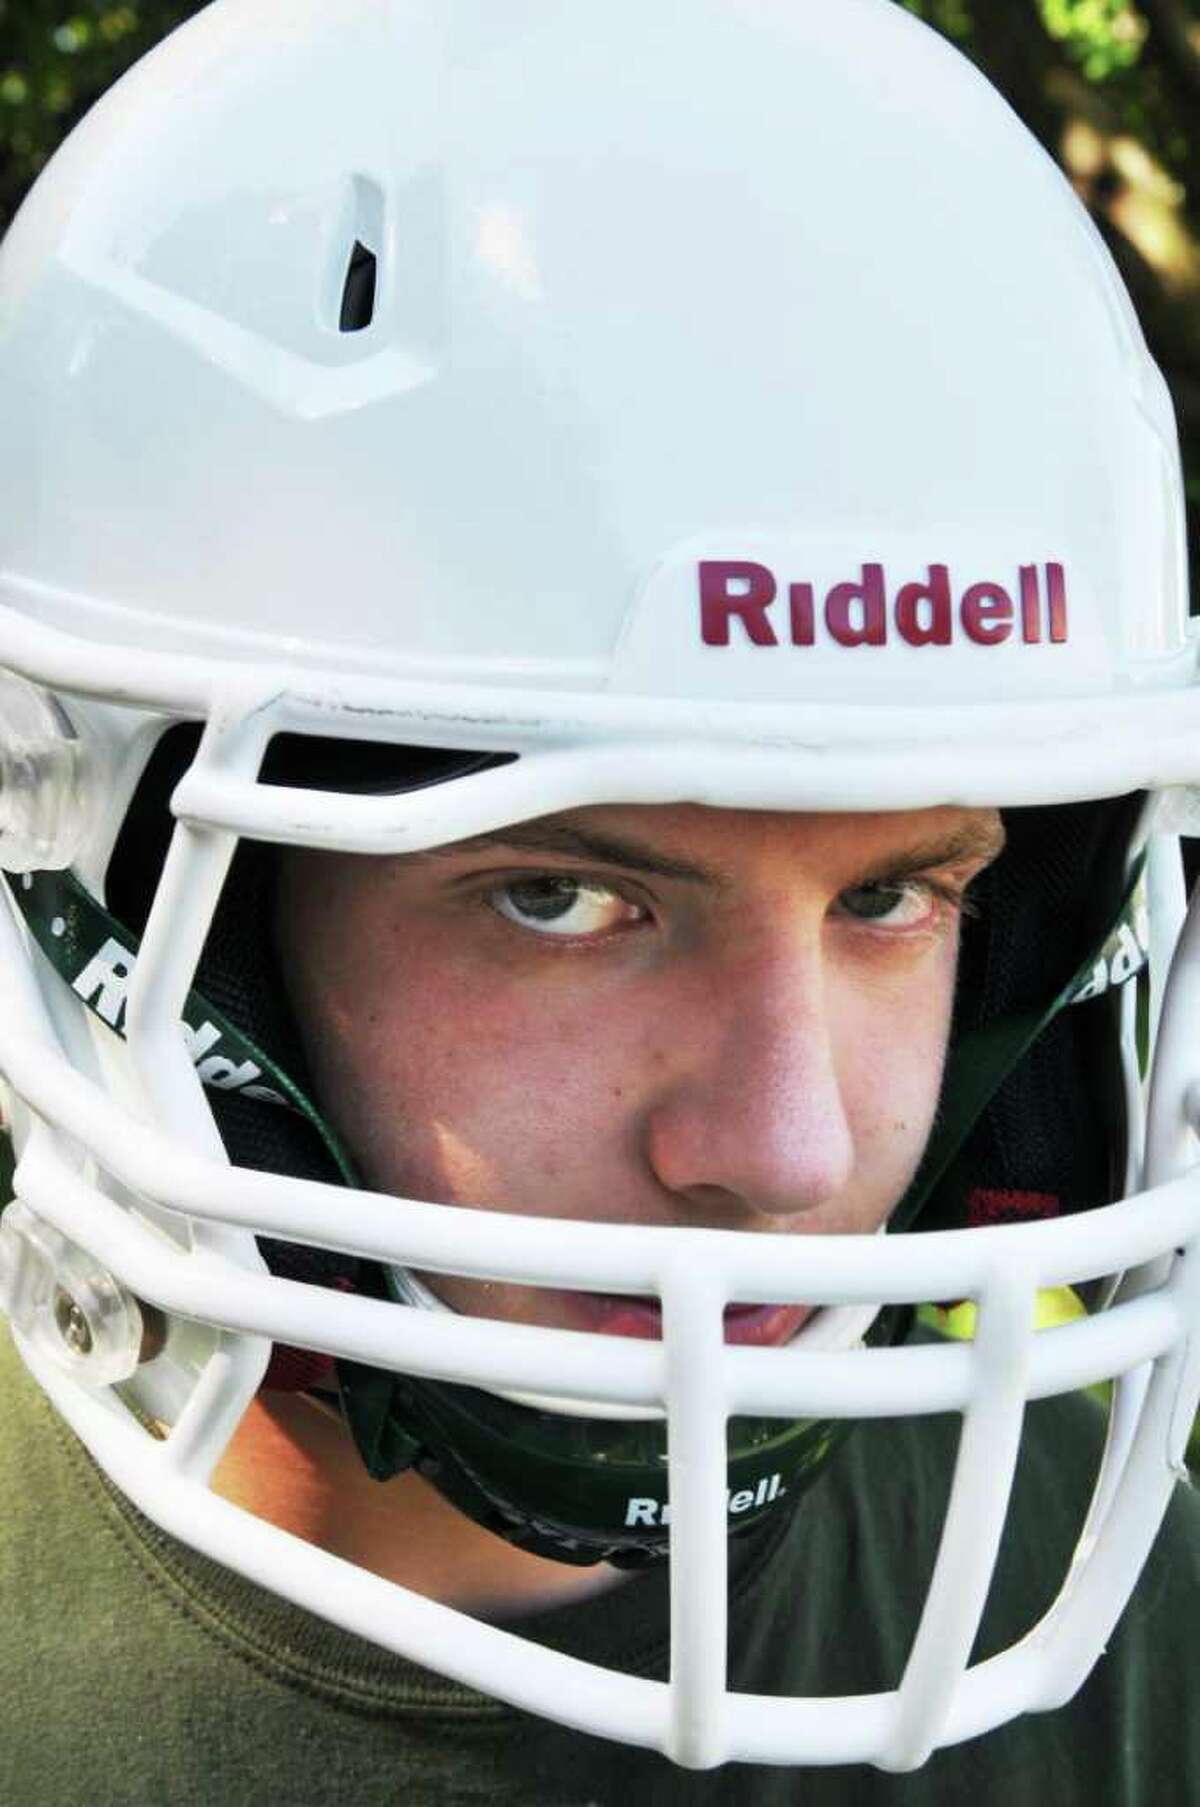 Schalmont High linebacker Alex Hildebrand wearing the most concussion-proof helmet he could purchase with his own money at his Rotterdam home Friday Aug. 12, 2011. (John Carl D'Annibale / Times Union)